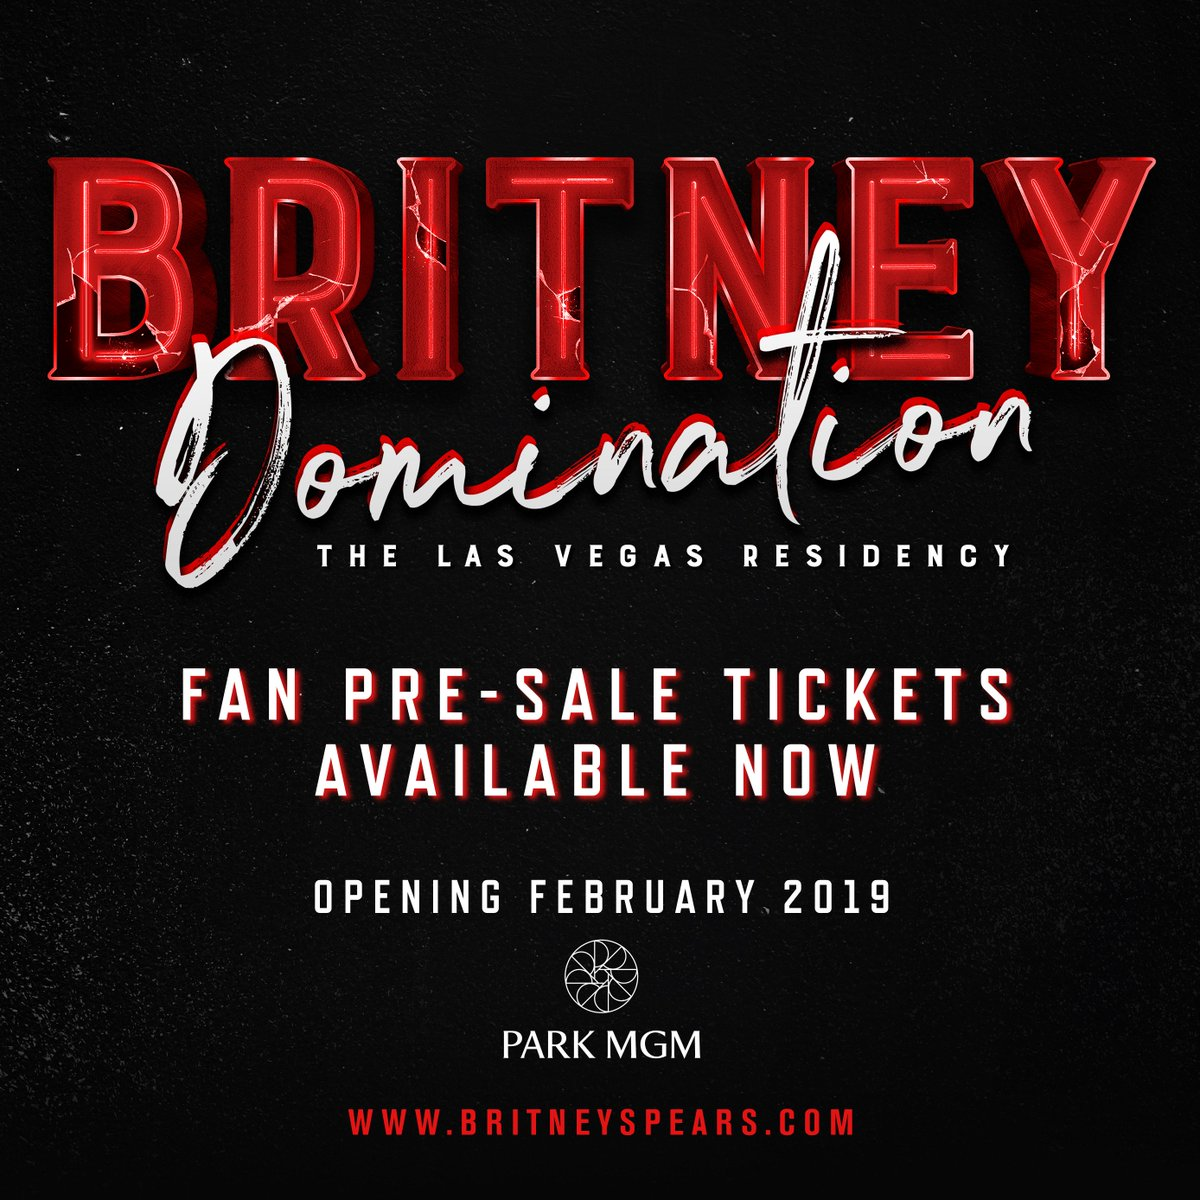 The #BritneyDomination fan pre-sale is going on right now!! ????❤️???? https://t.co/KYA36RI9Zh https://t.co/KQnJICvAOW